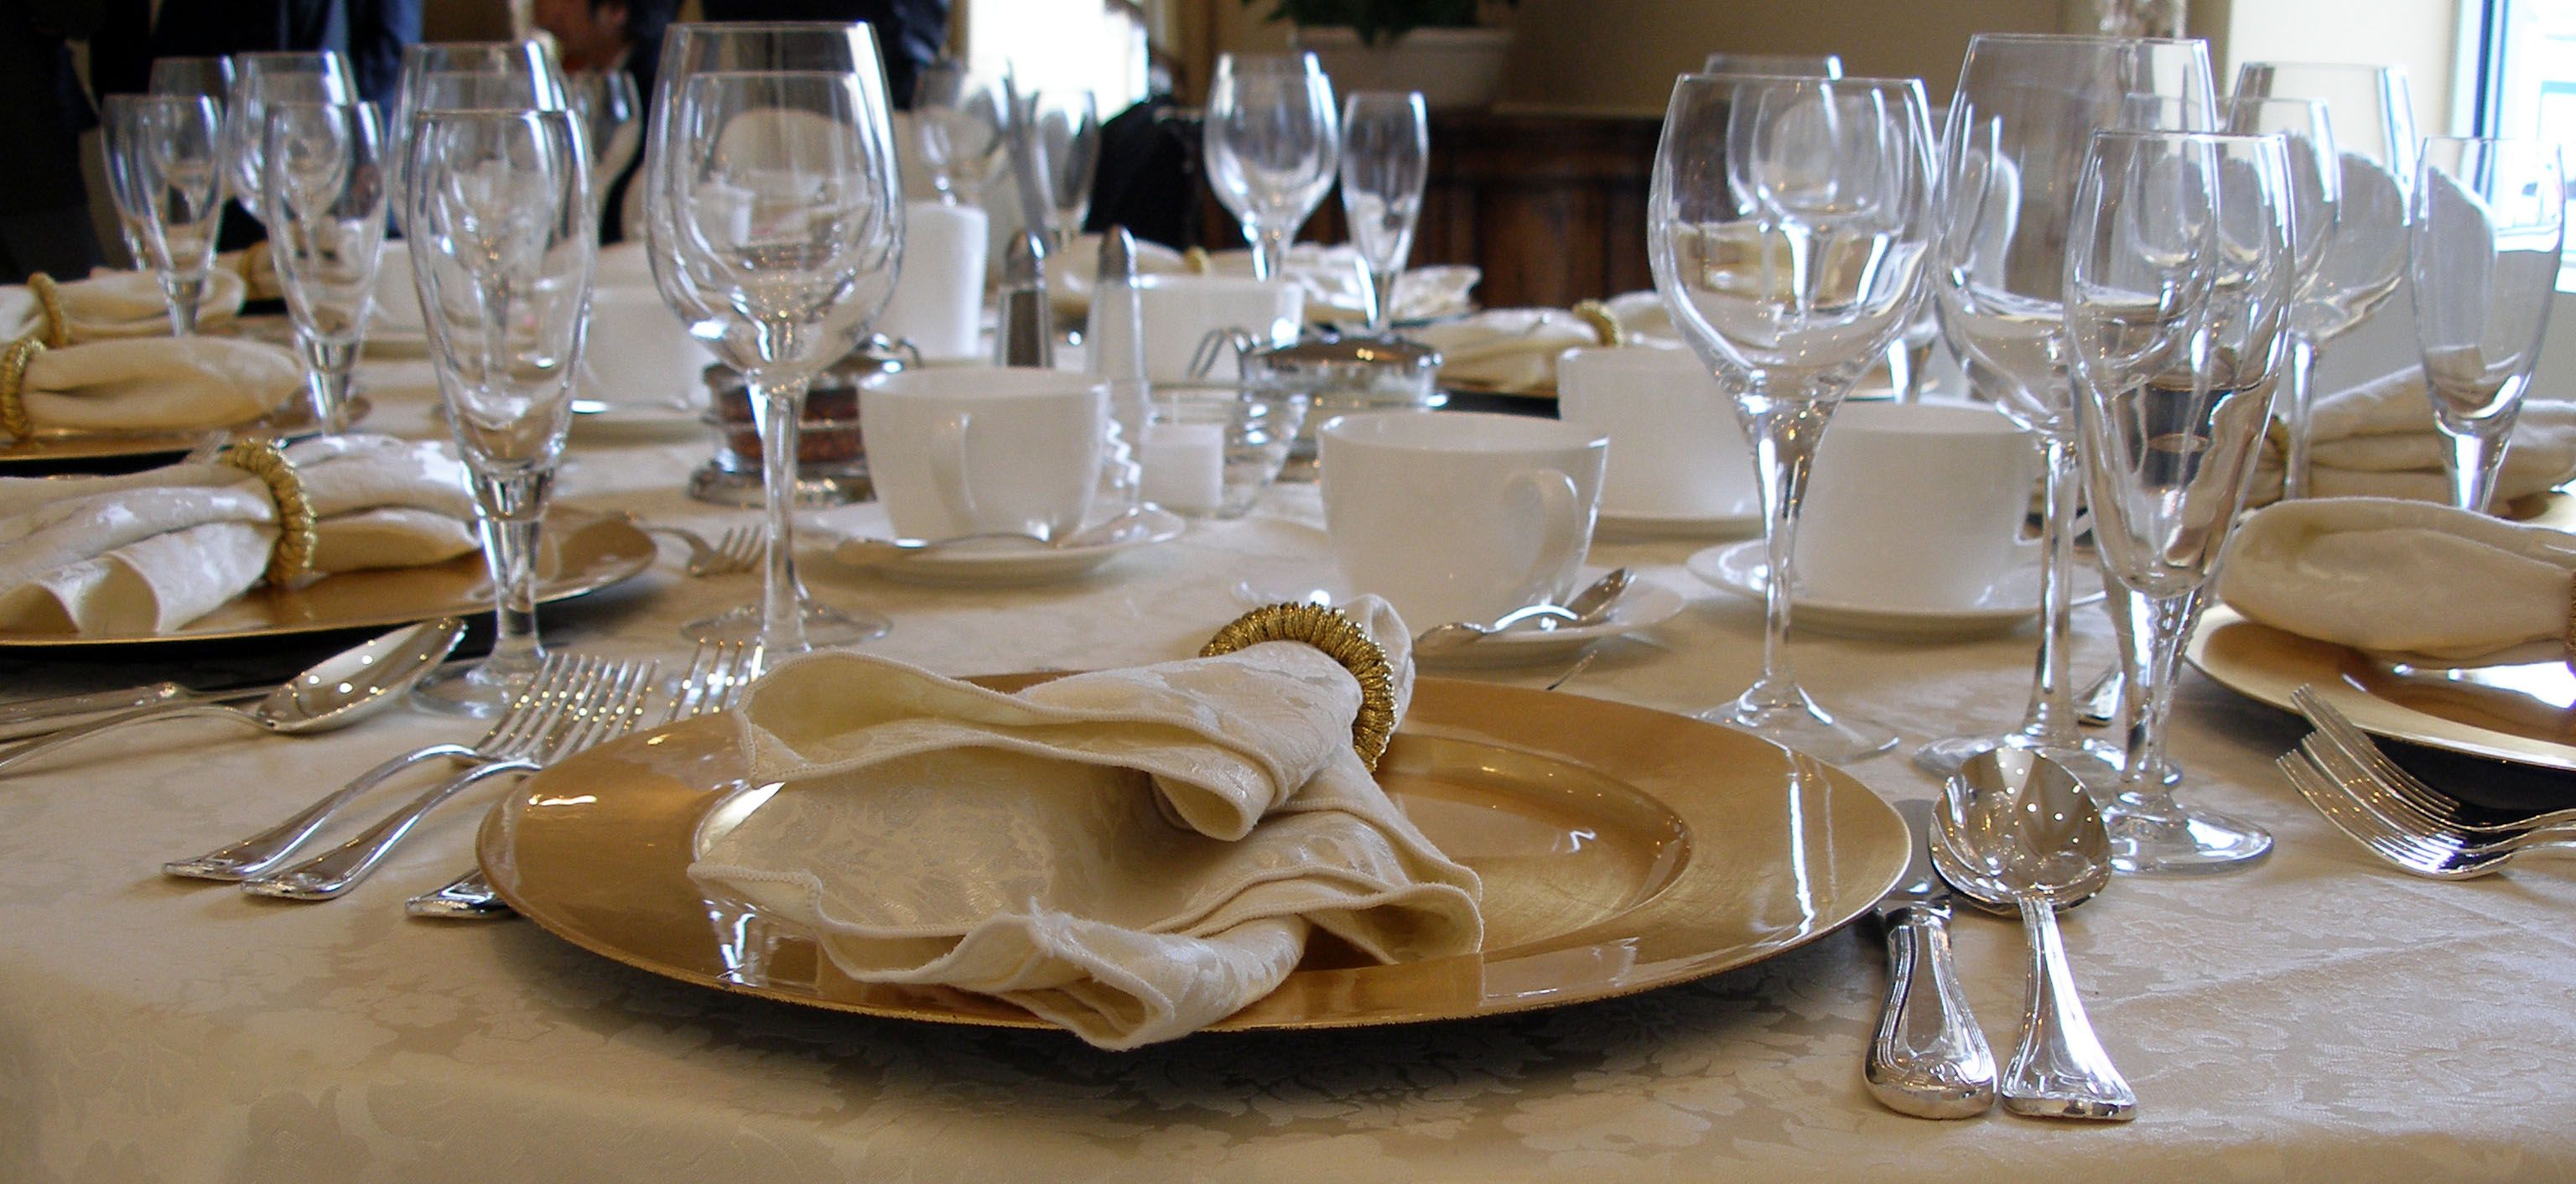 Table setting for fine dining google search table Dinner table setting pictures